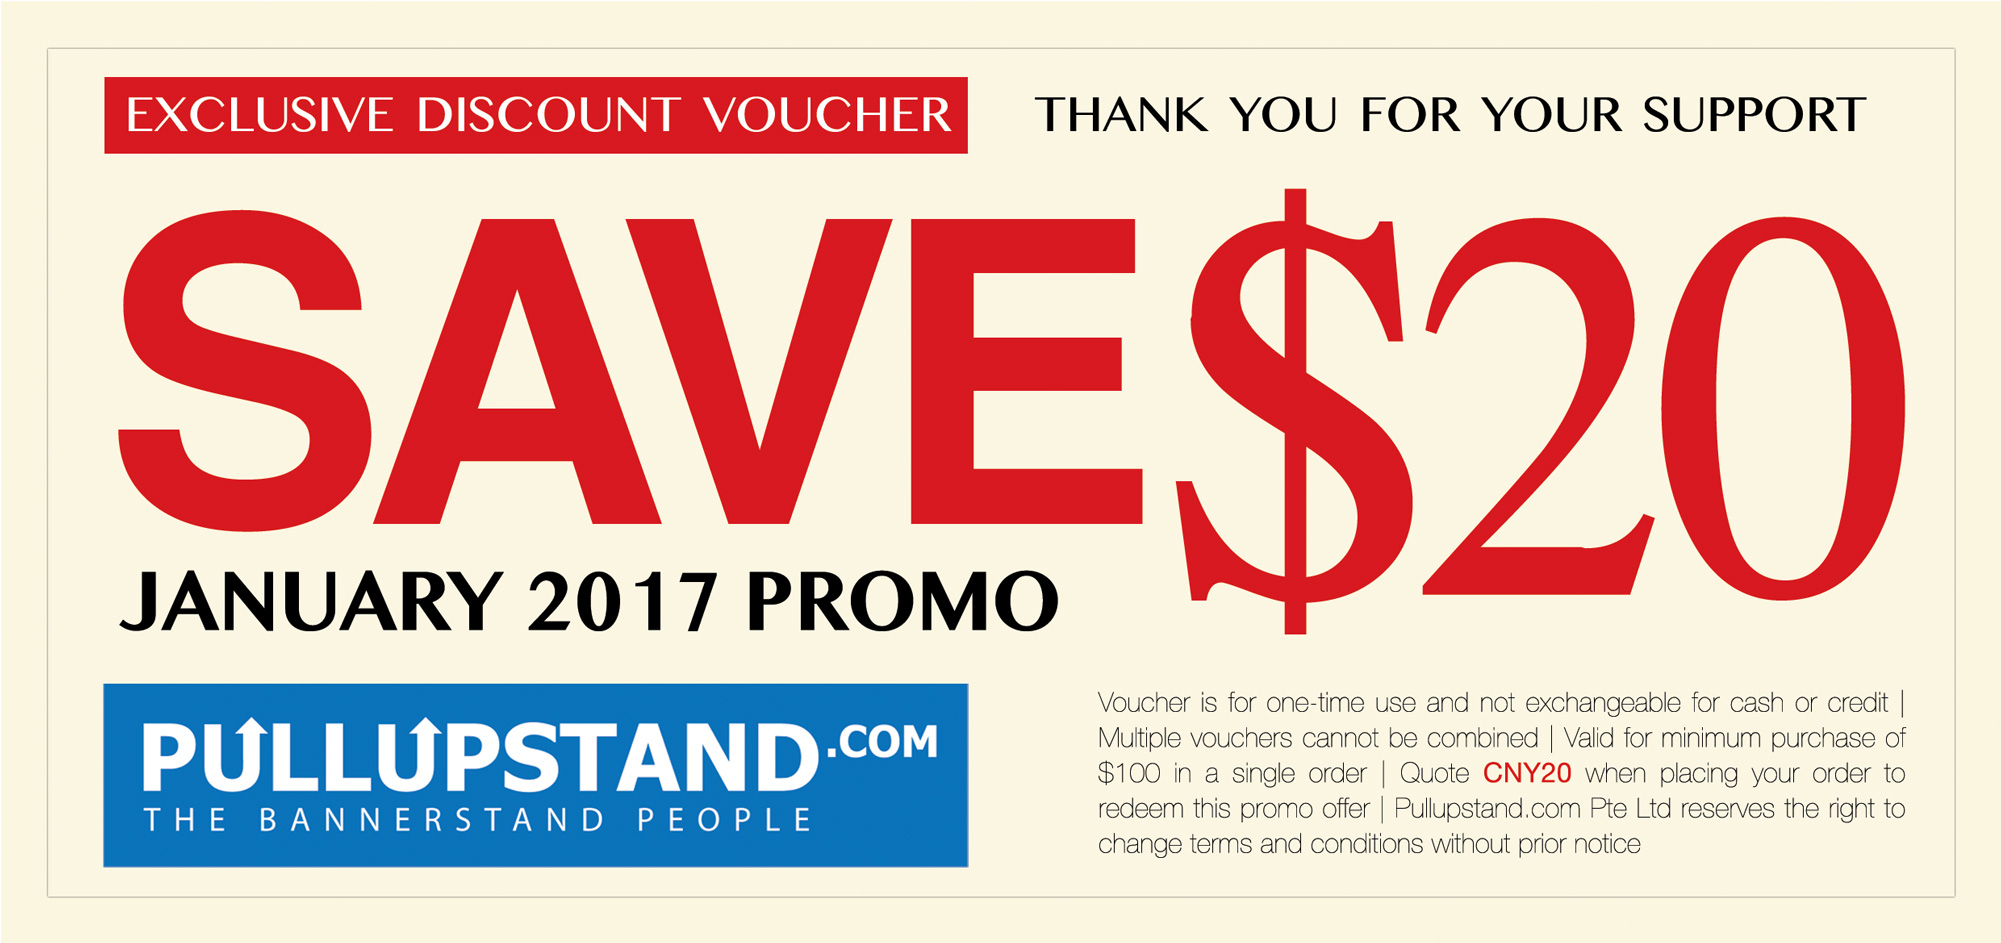 January 2017 PROMO - $20 OFF VOUCHER - Pullupstand com